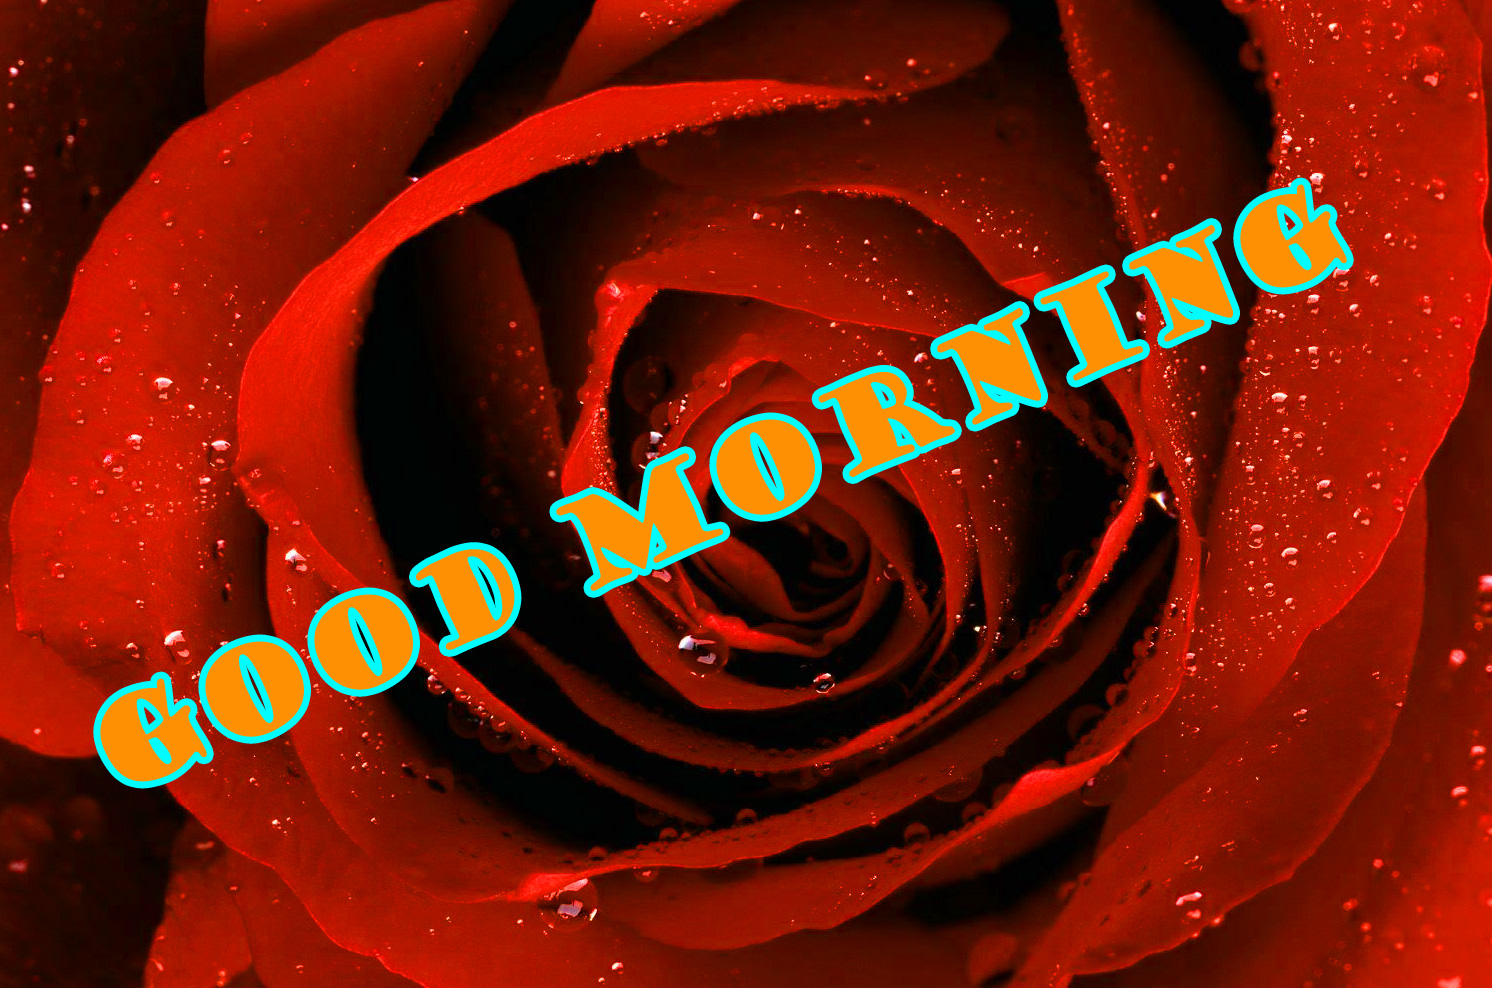 Good Morning Red Rose Images Wallpaper Photo Pics HD Download